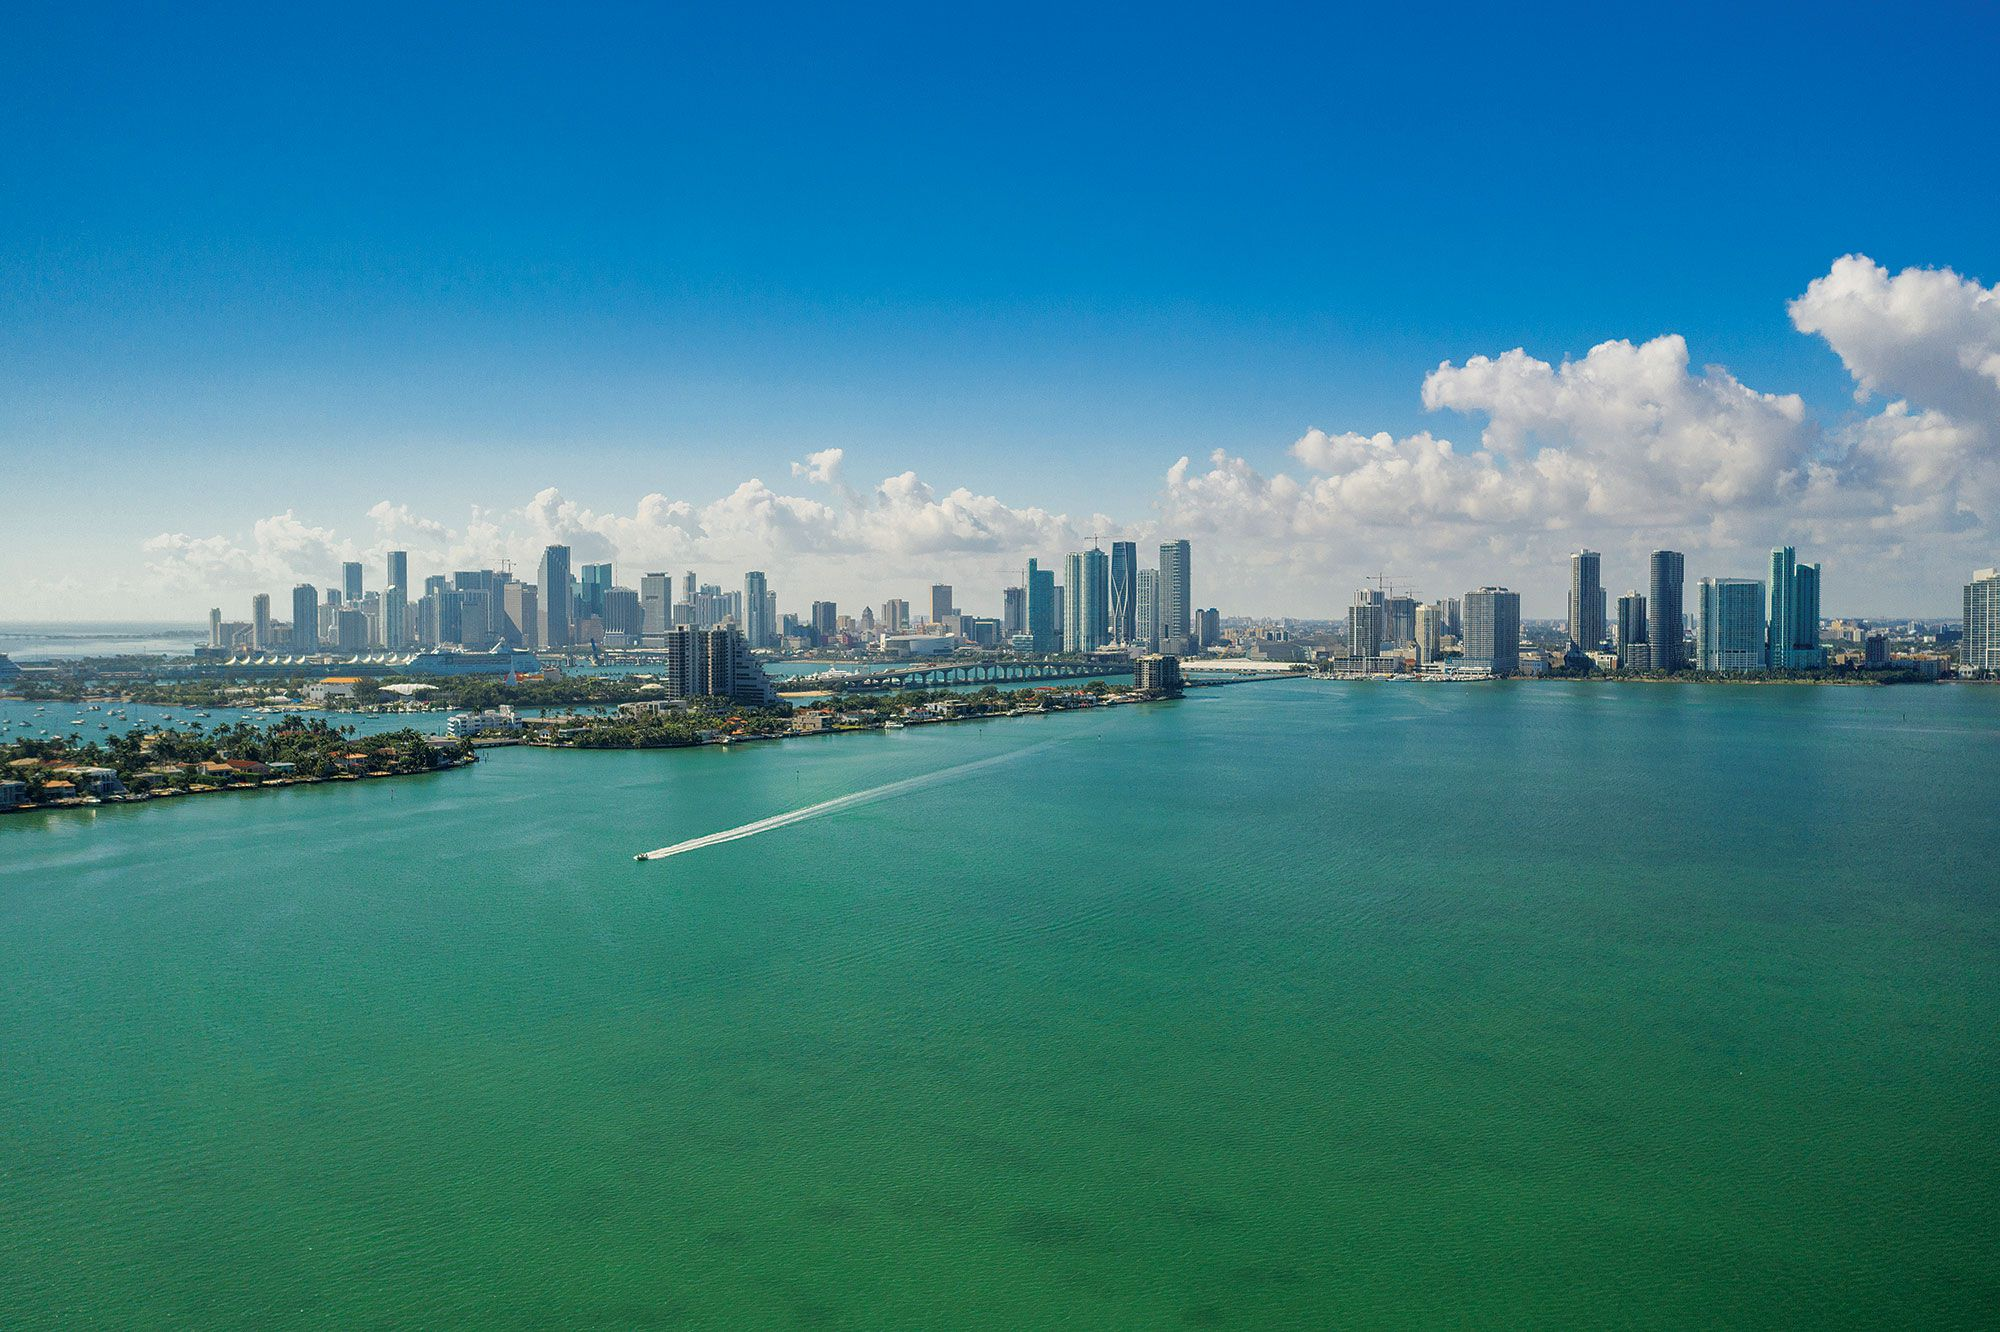 Urban Miami's sprawling Biscayne Bay hosts hero species such as tarpon, bonefish and permit.